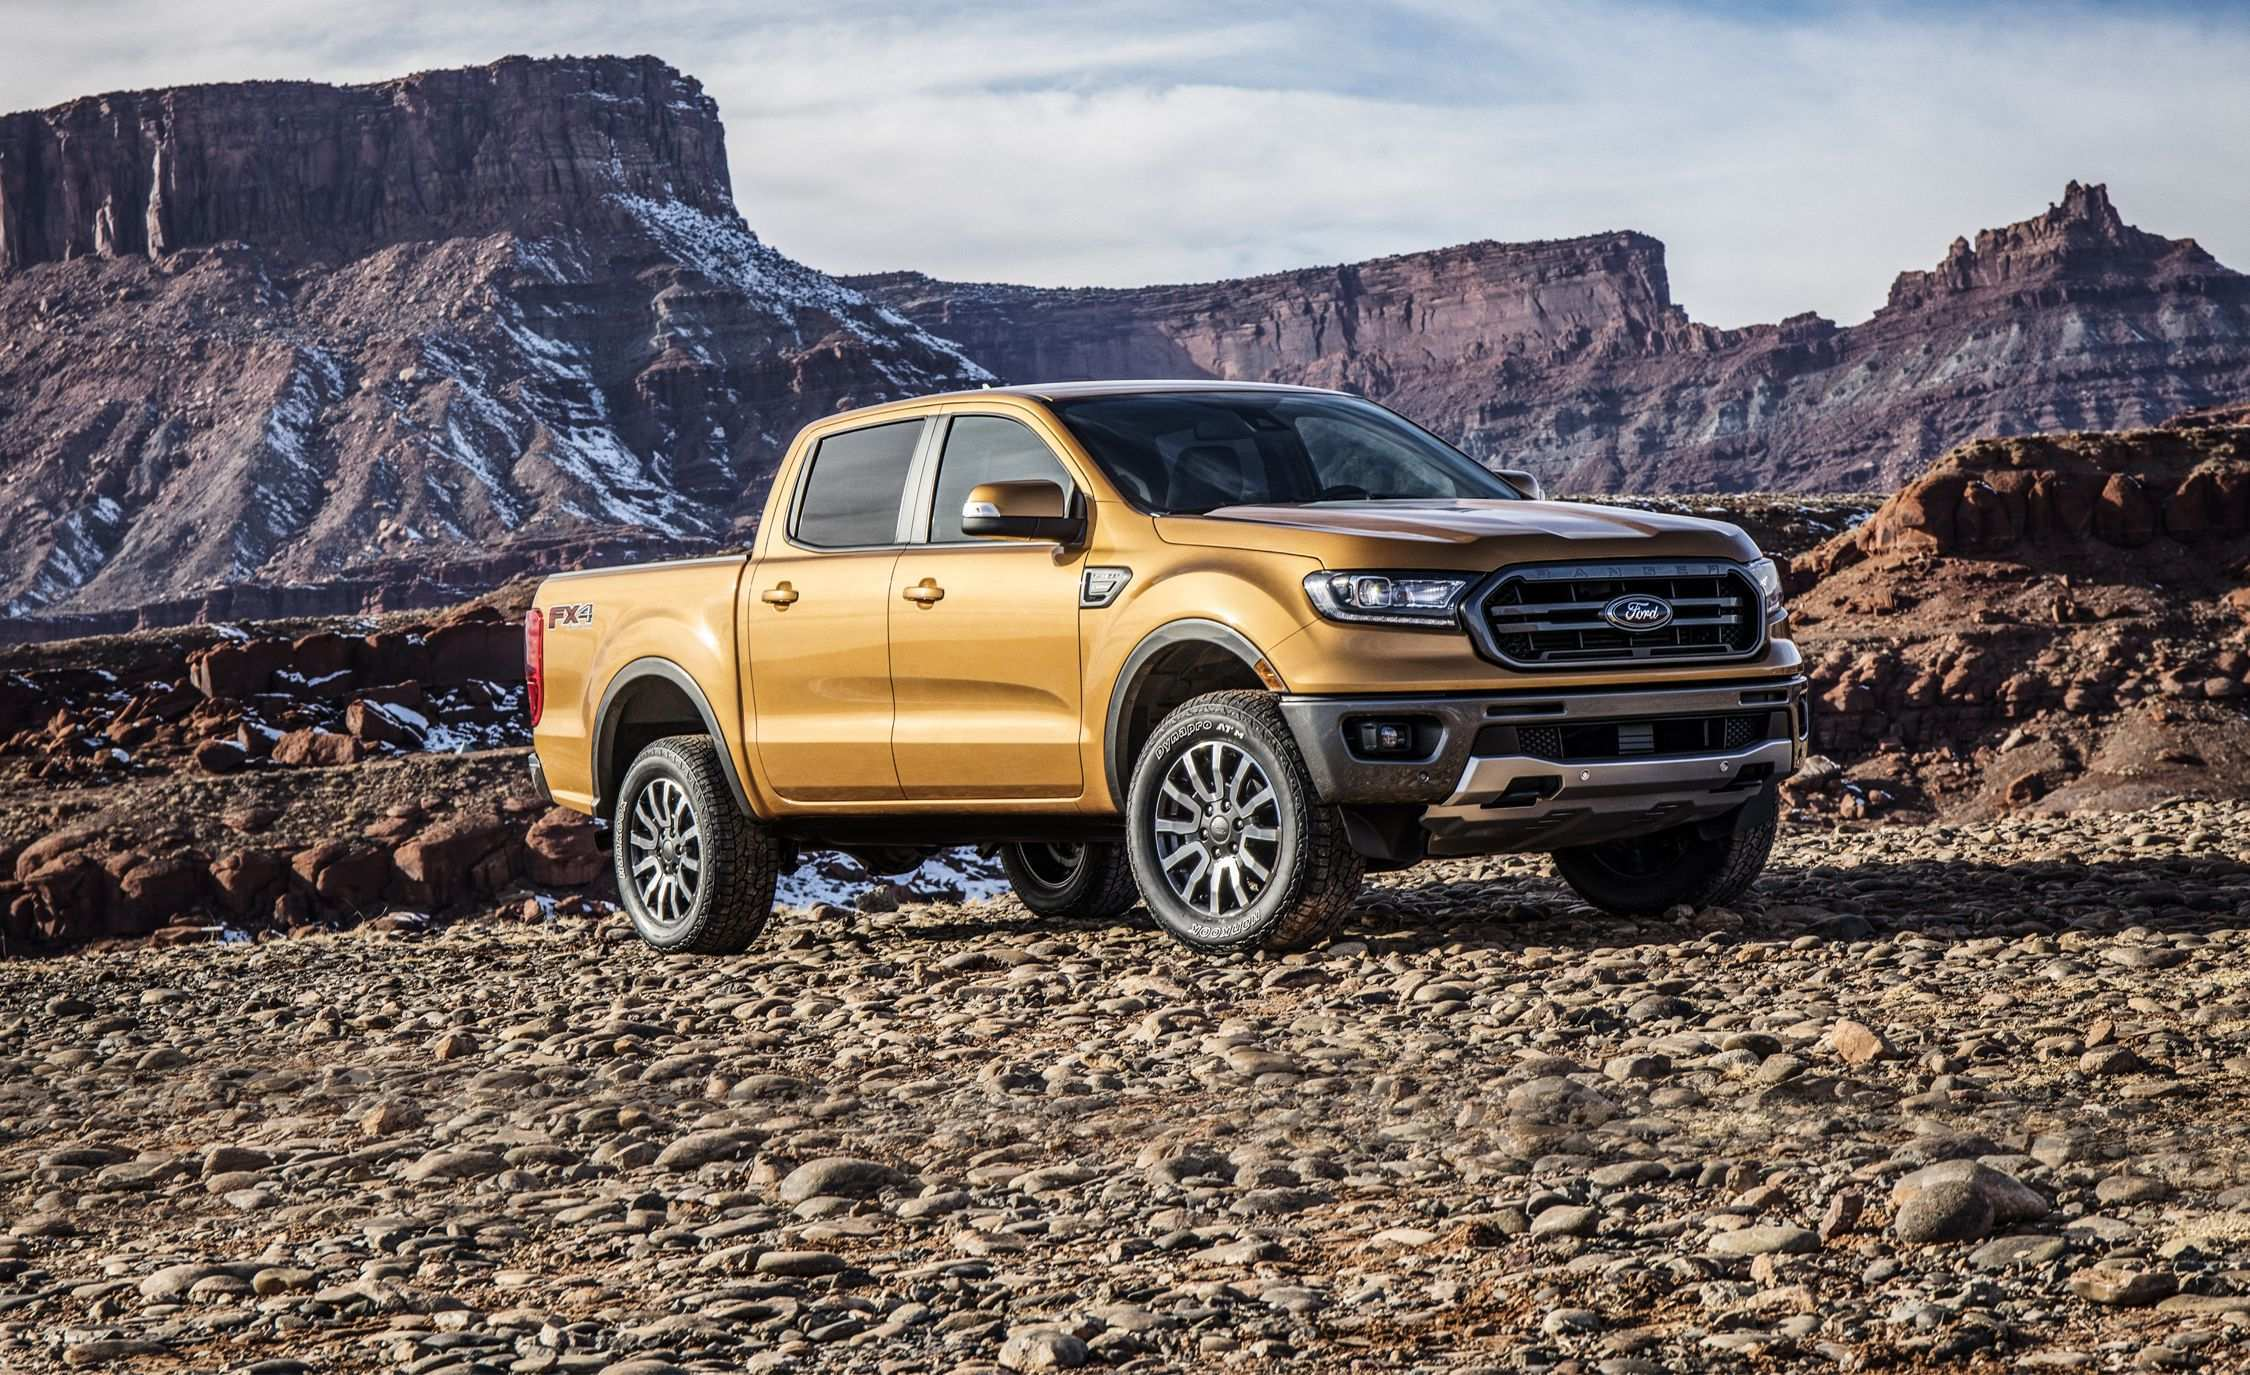 54 Concept of 2019 Ford Ranger Vs Bmw Canyon Spy Shoot with 2019 Ford Ranger Vs Bmw Canyon